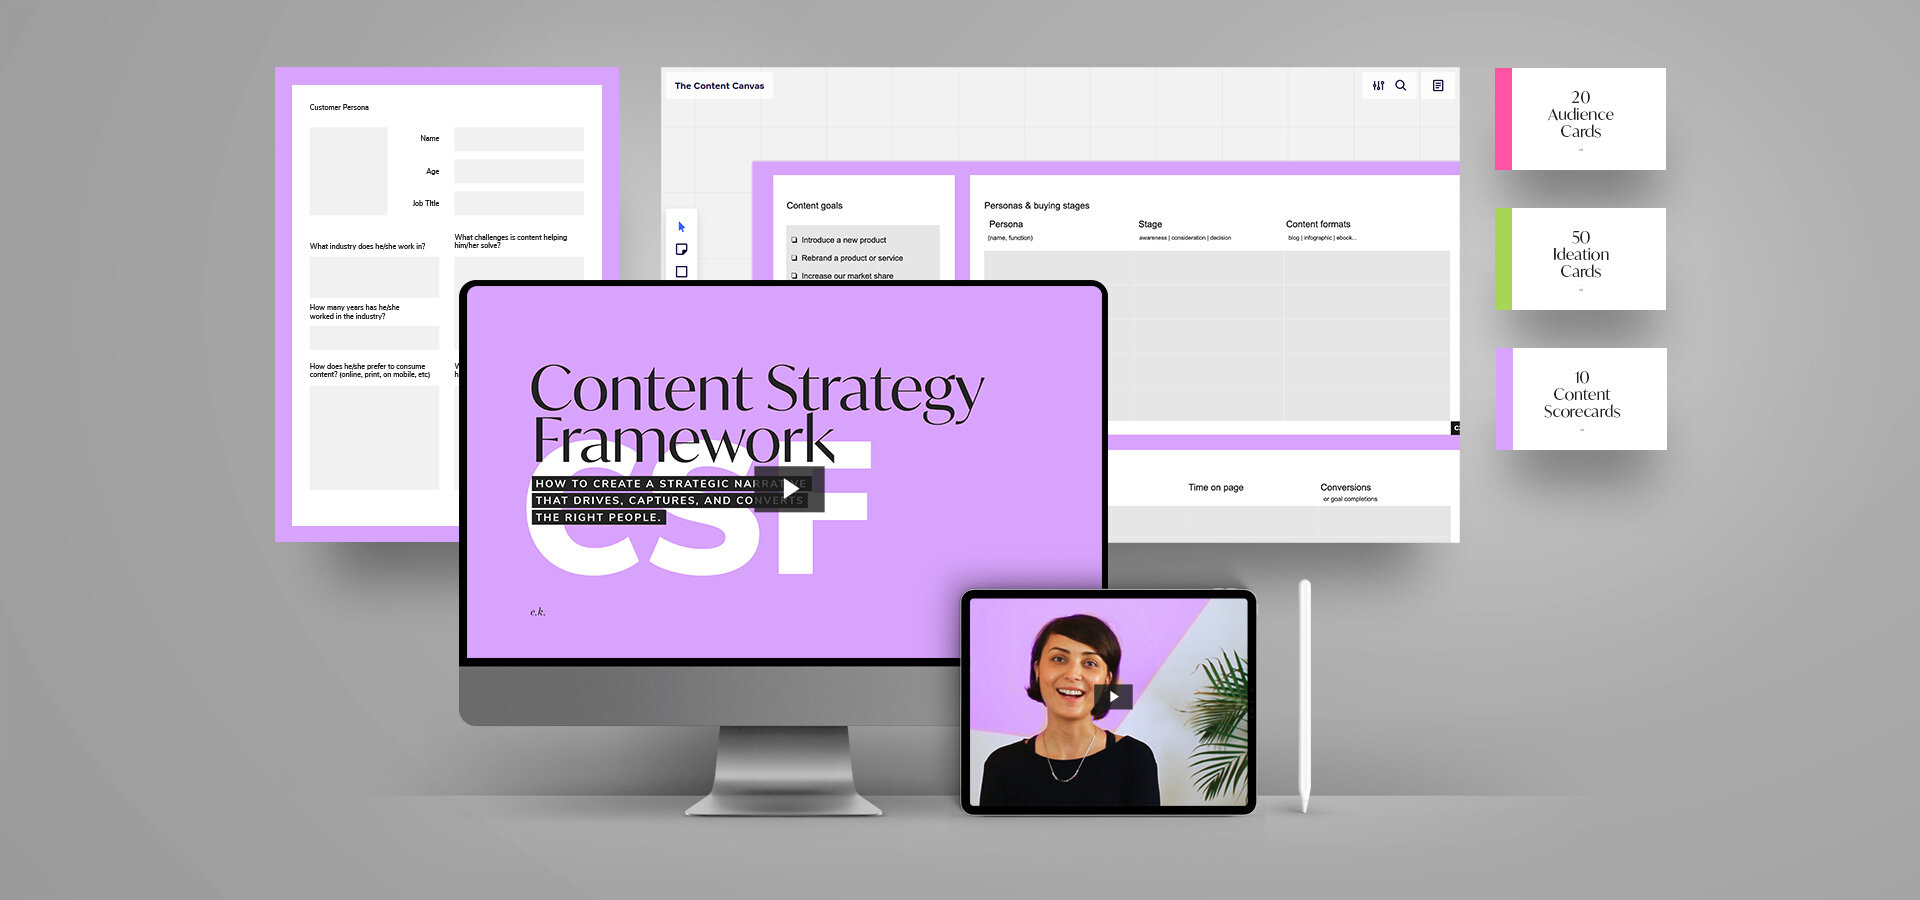 Introducing the Content Strategy Framework